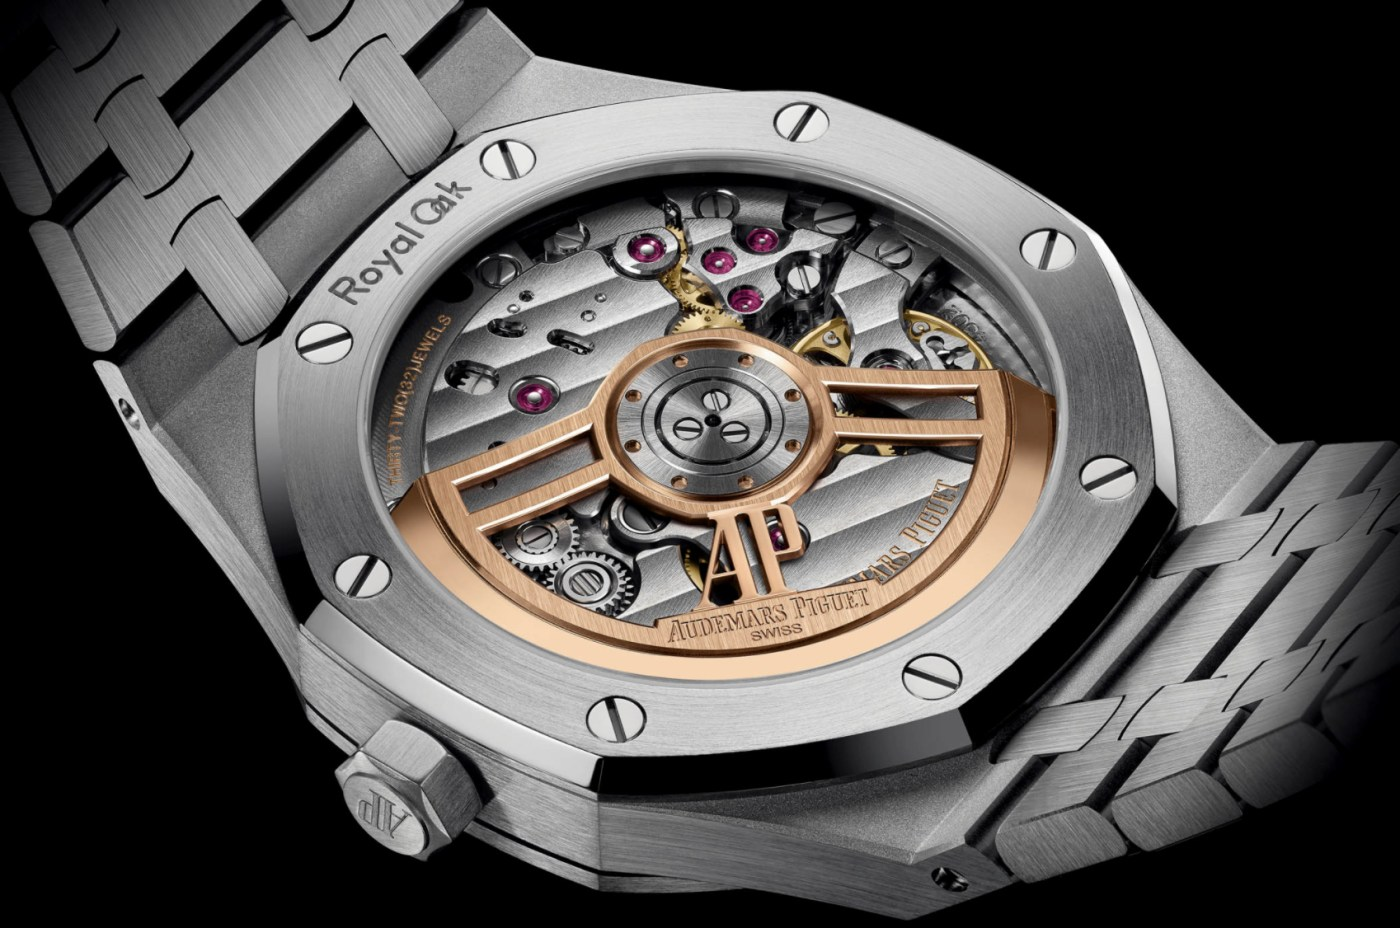 Audemars Piguet Royal Oak 15500 caliber 4302 caseback